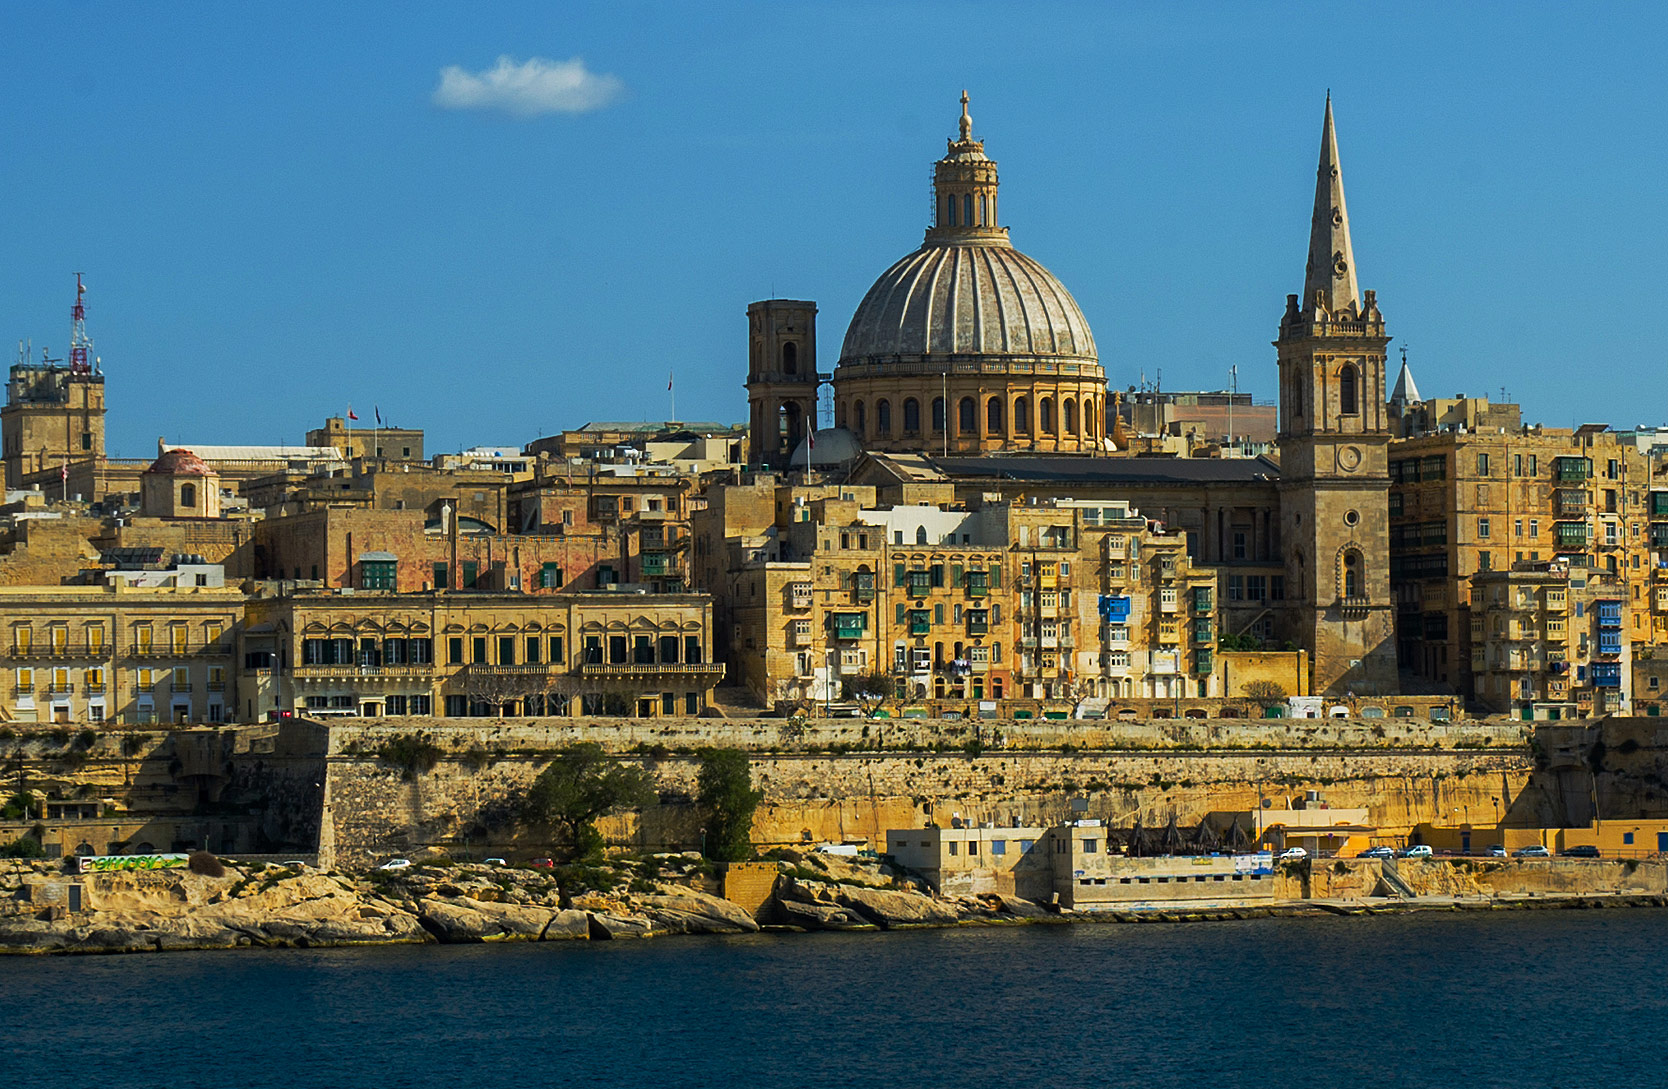 Malta boasts some extraordinary architecture